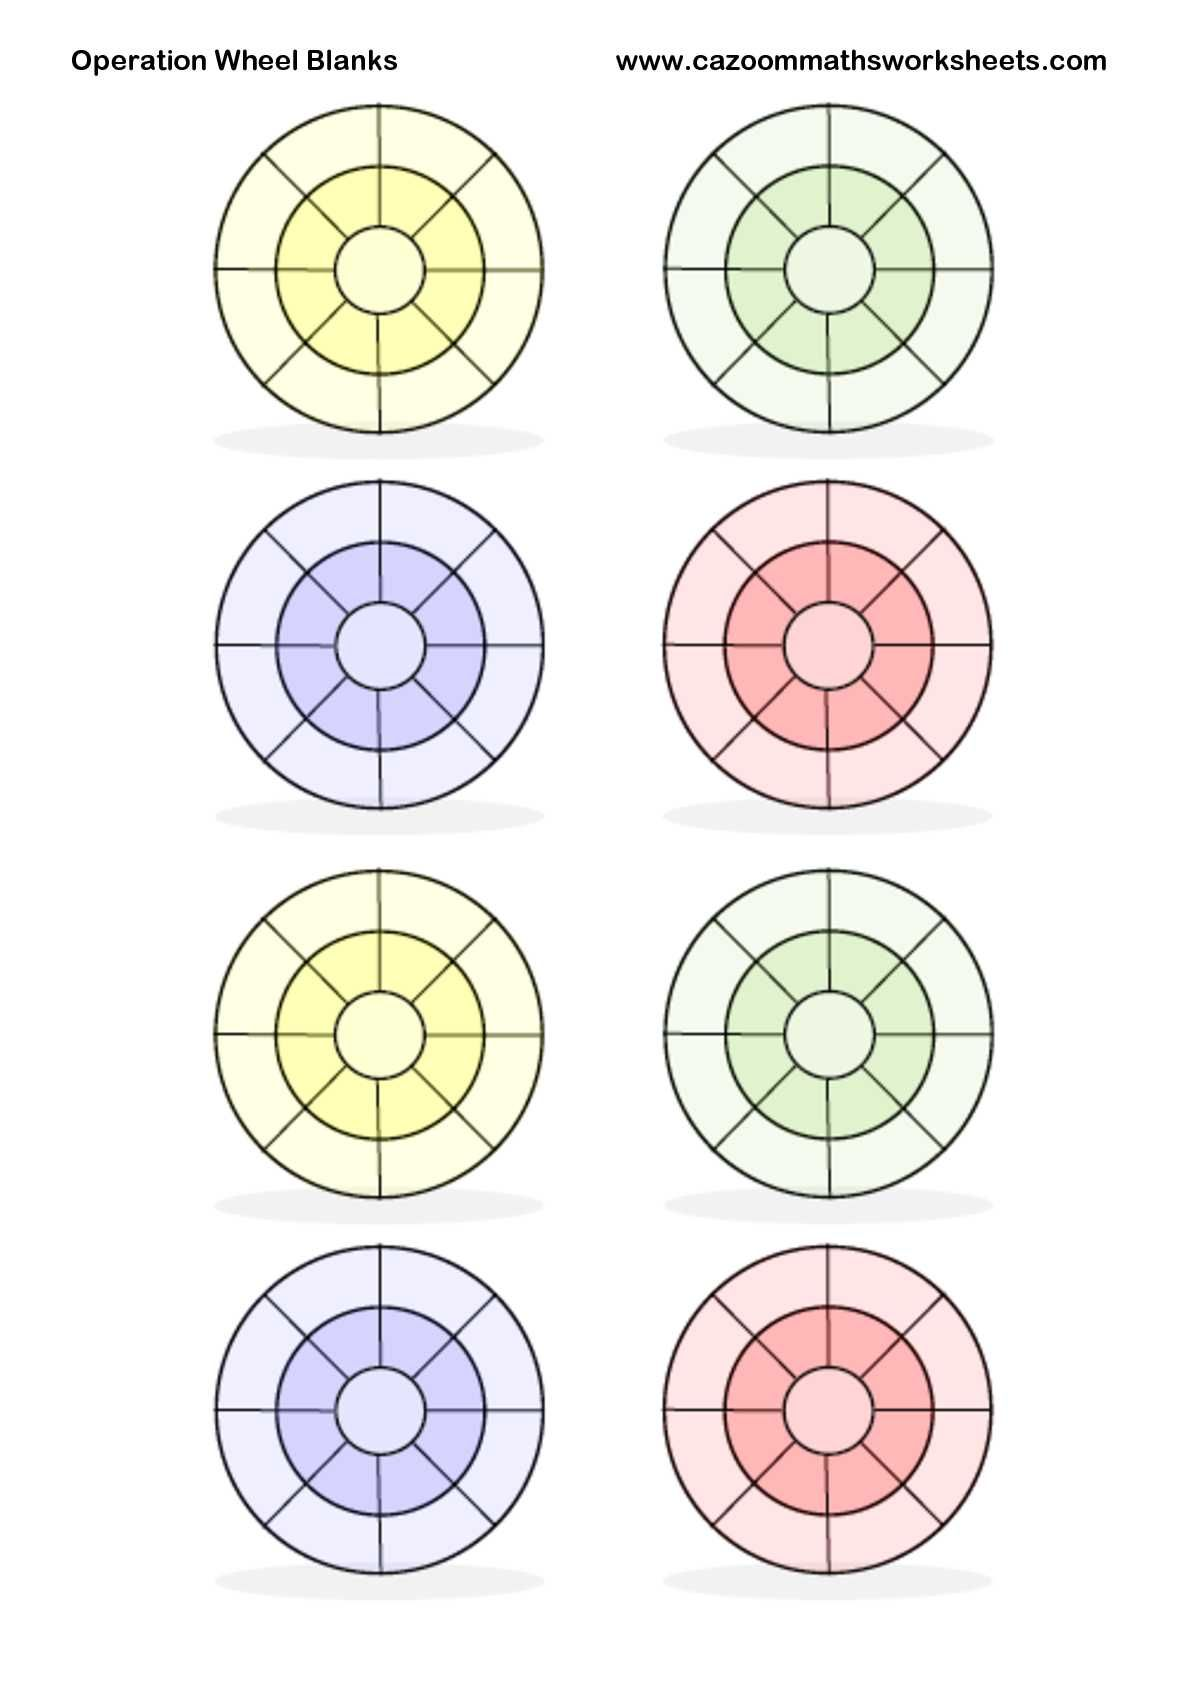 Operation Wheel Blanks For Addition Subtraction Or Multiplication